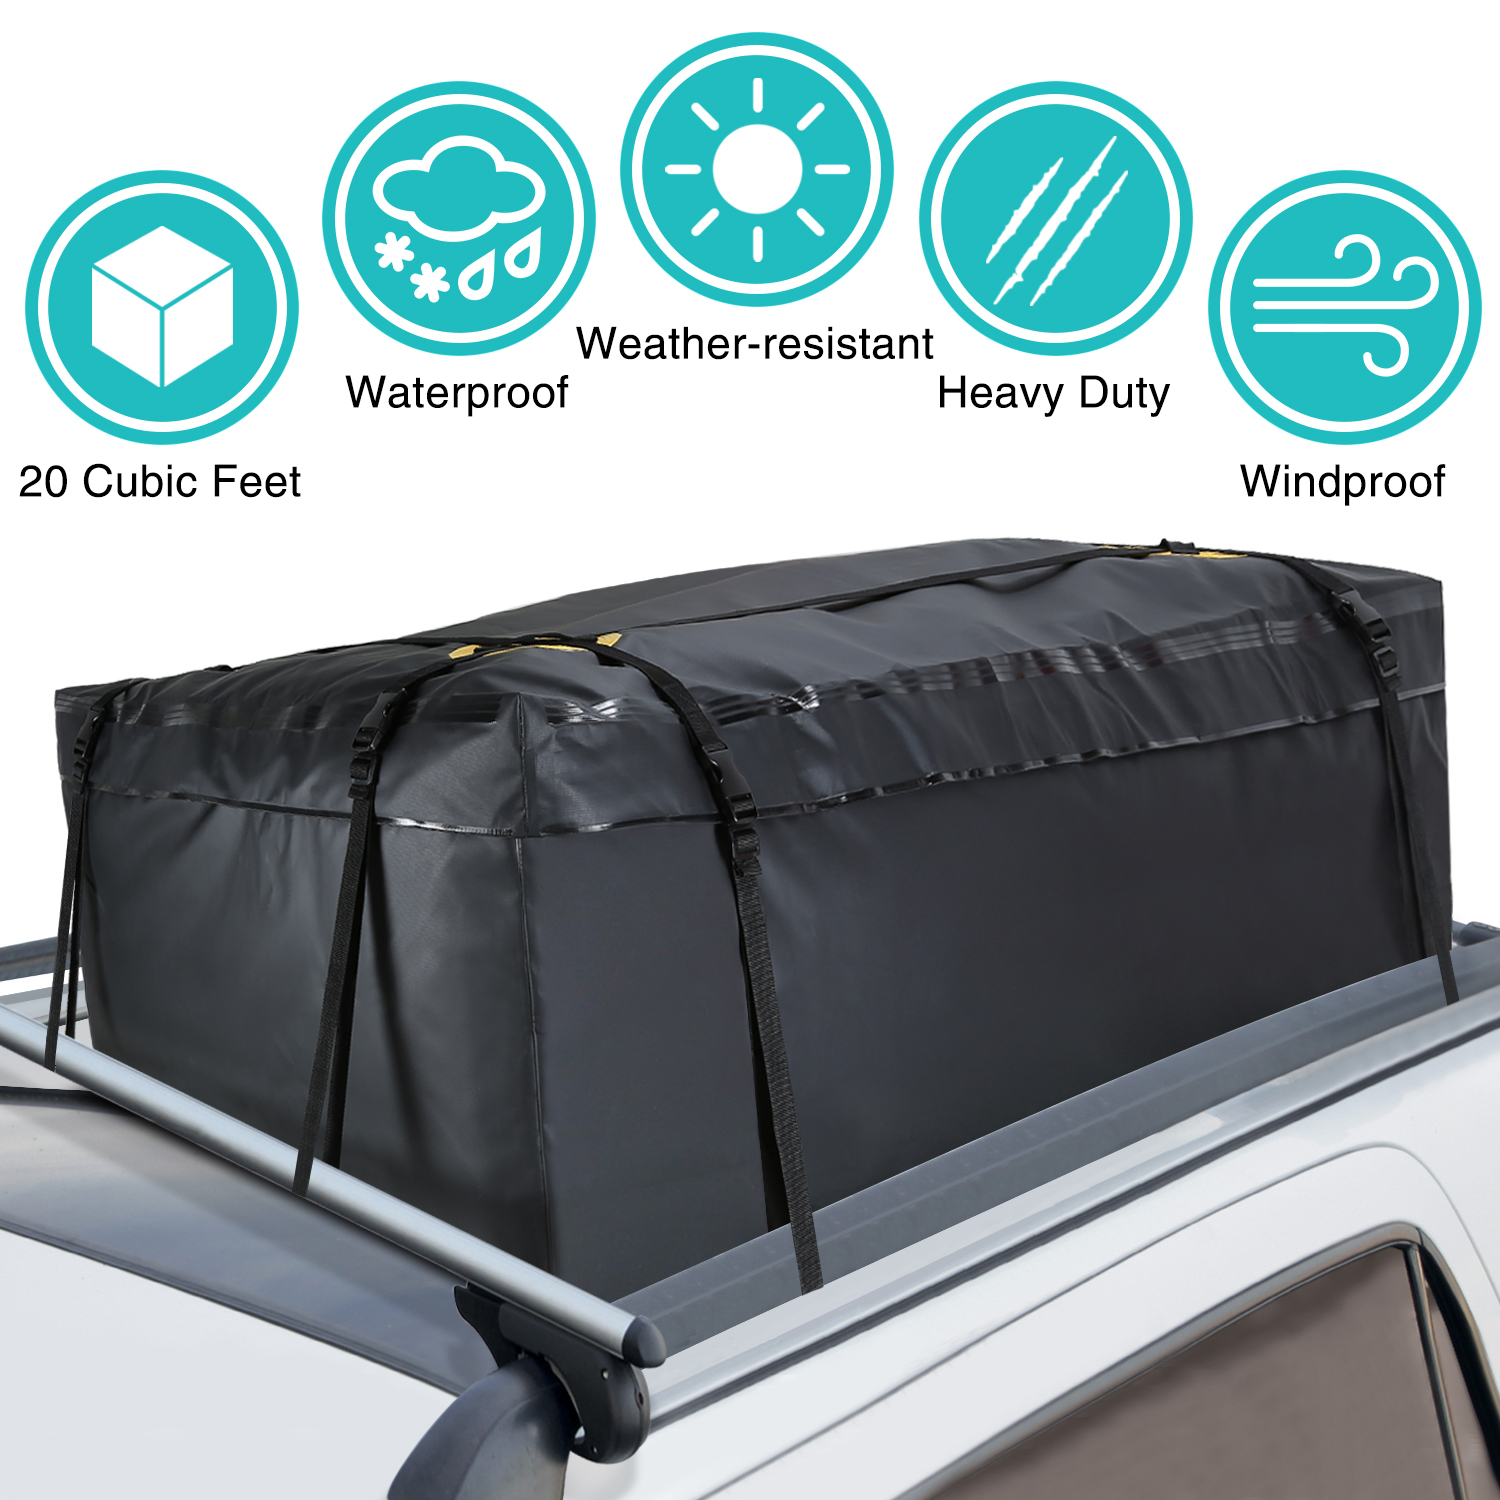 Modokit Car Cargo Roof Bag Bundle- 100% Waterproof Roof Top Cargo Bag for Vehicles with Rack Crossbars + Non Slip Protective Roof Mat & Storage Bag, Heavy Duty Roof Cargo Bag 15 Cubic Feet